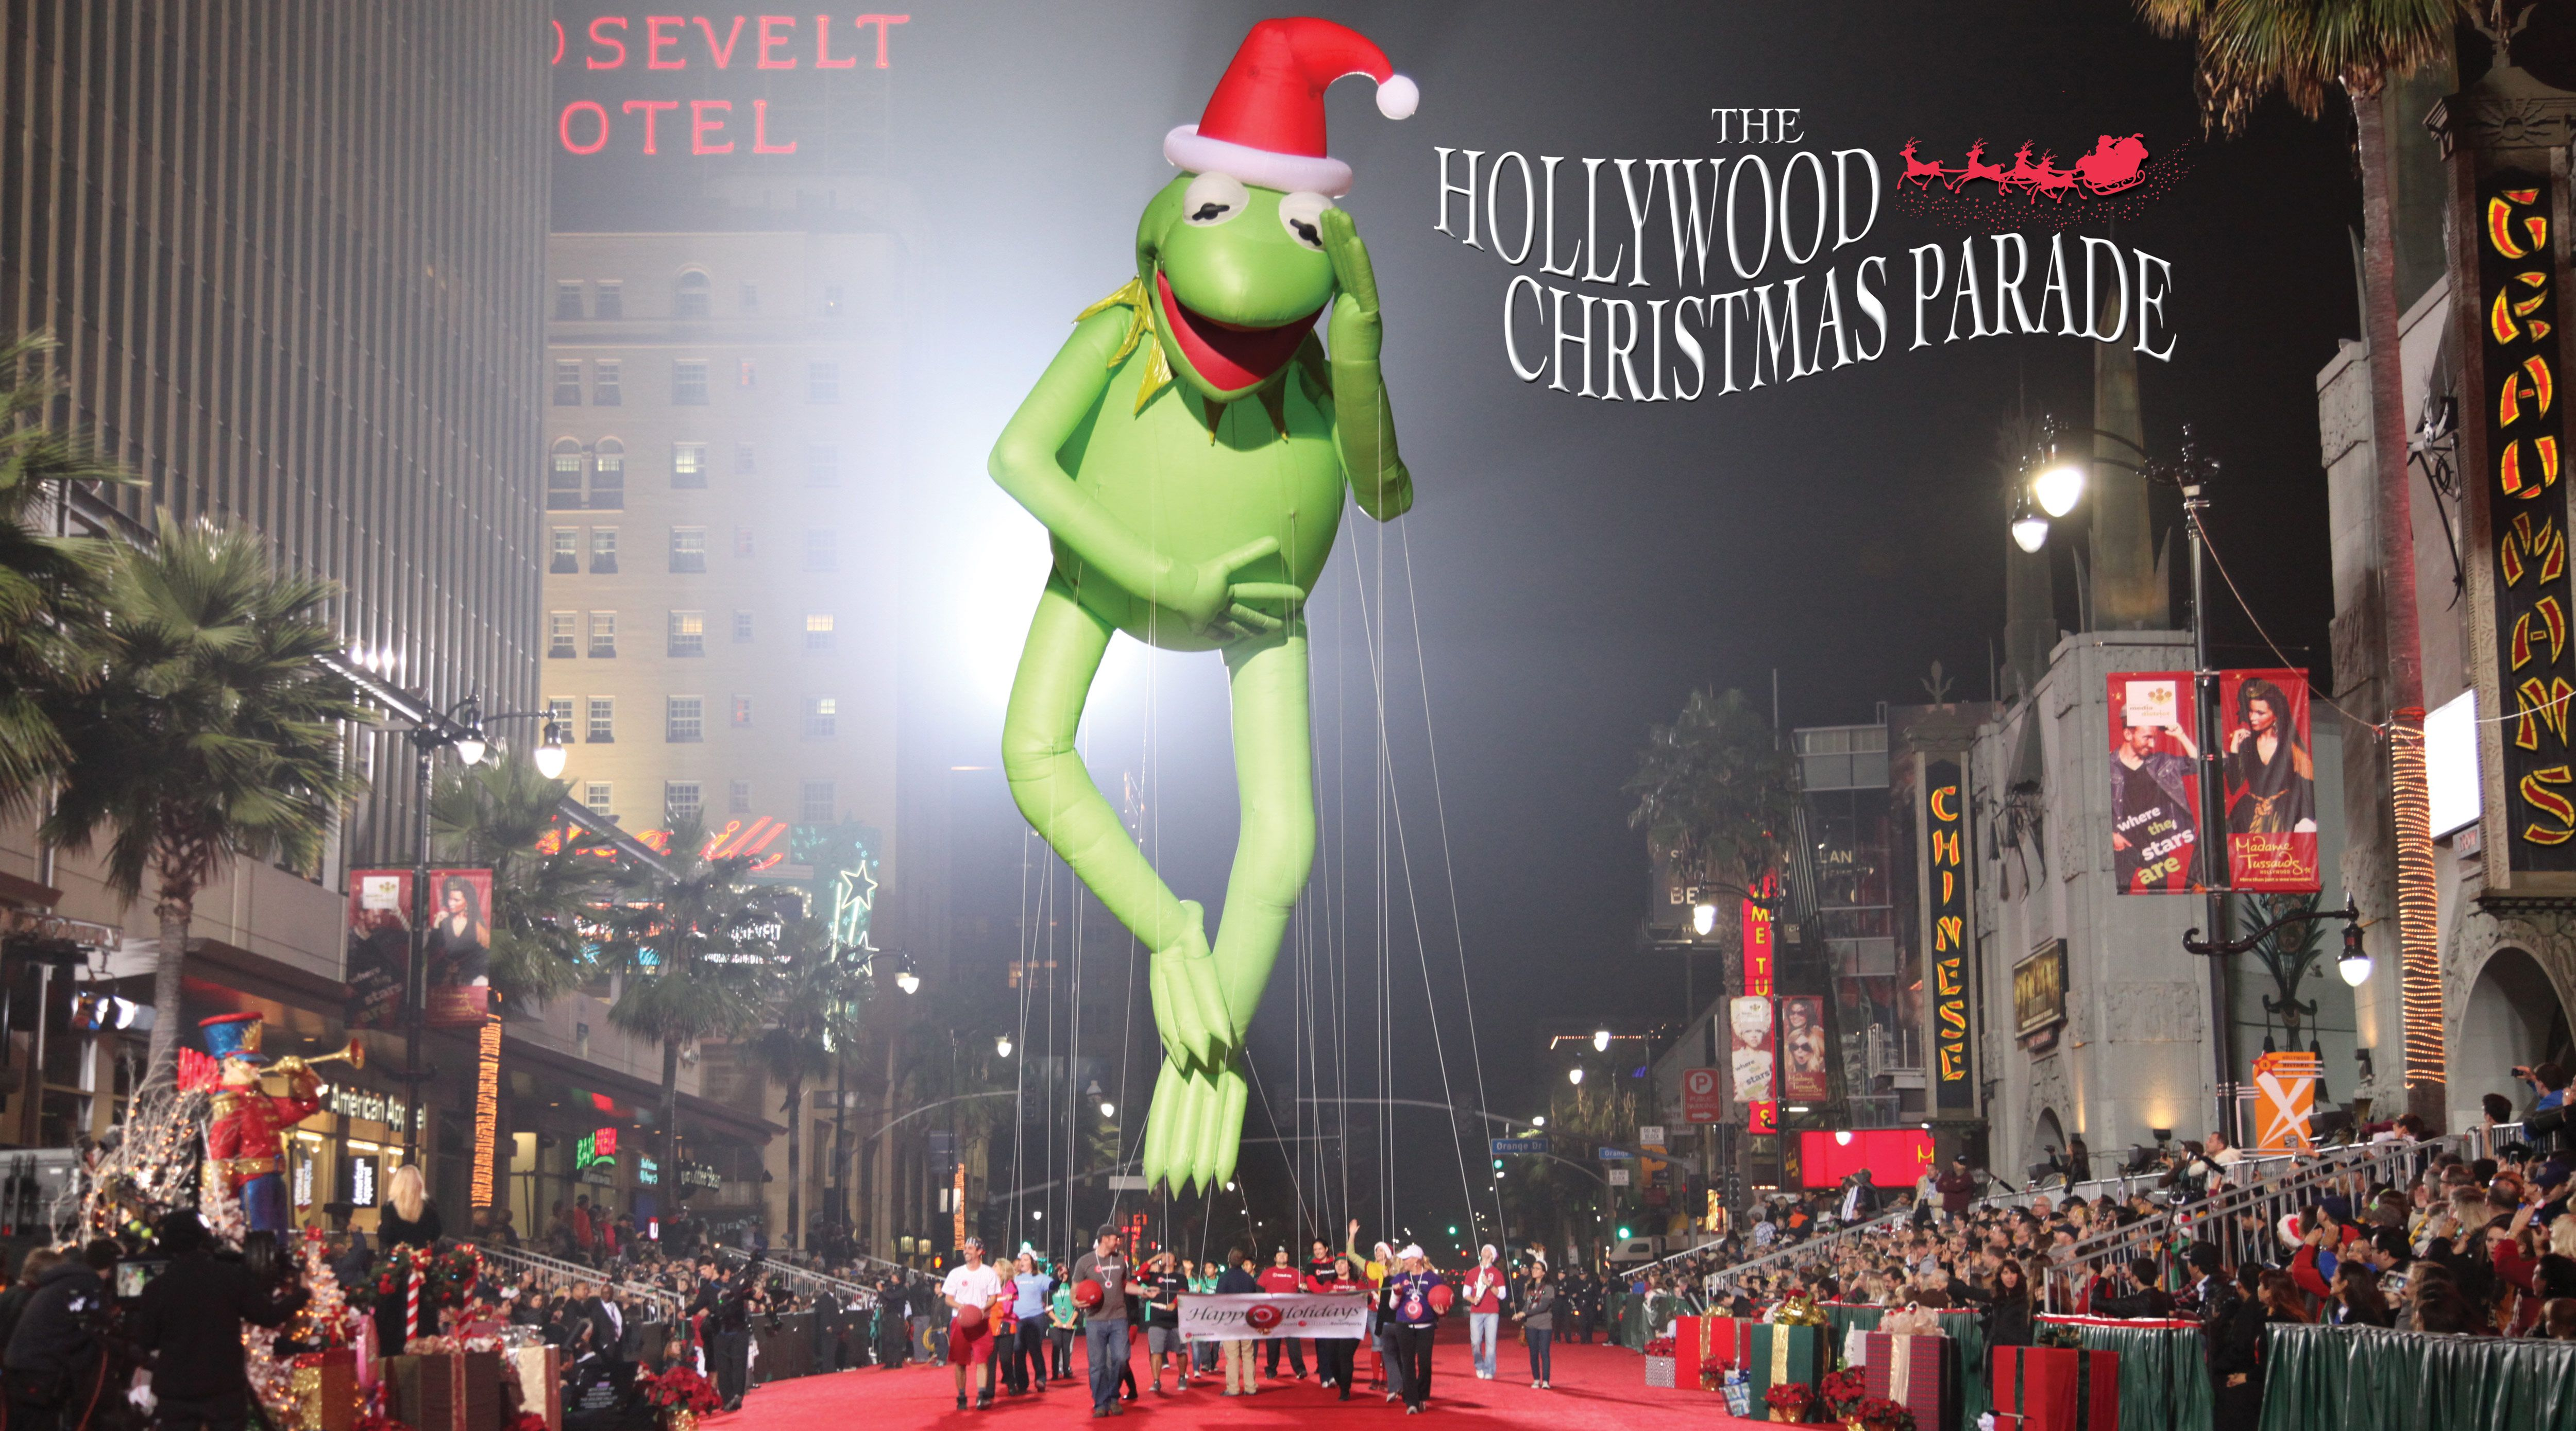 The Hollywood Christmas Parade is star-studded and one of the best night parades in the state.